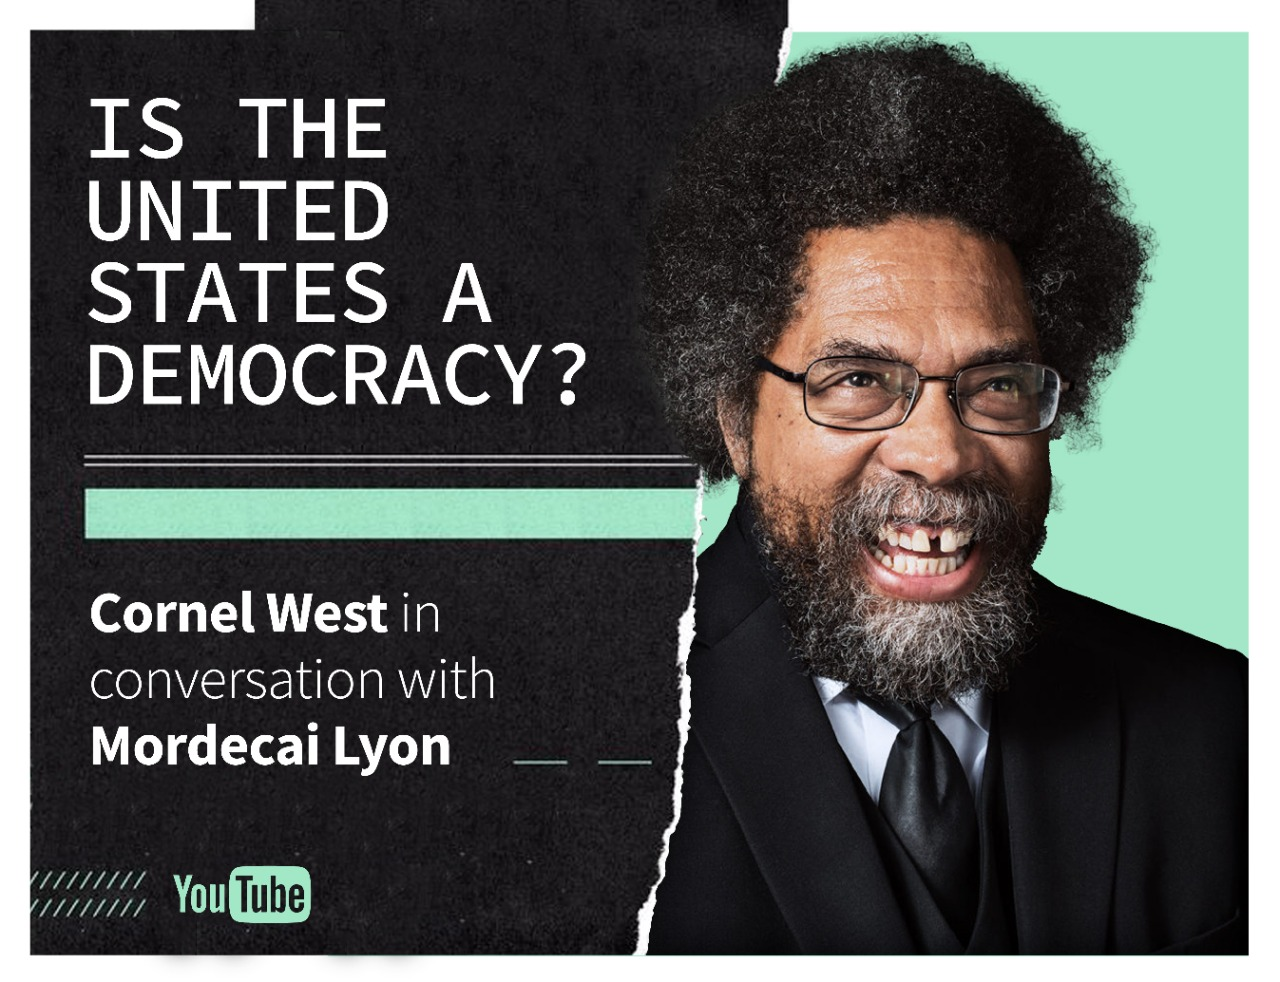 IS THE UNITED STATES A DEMOCRACY?